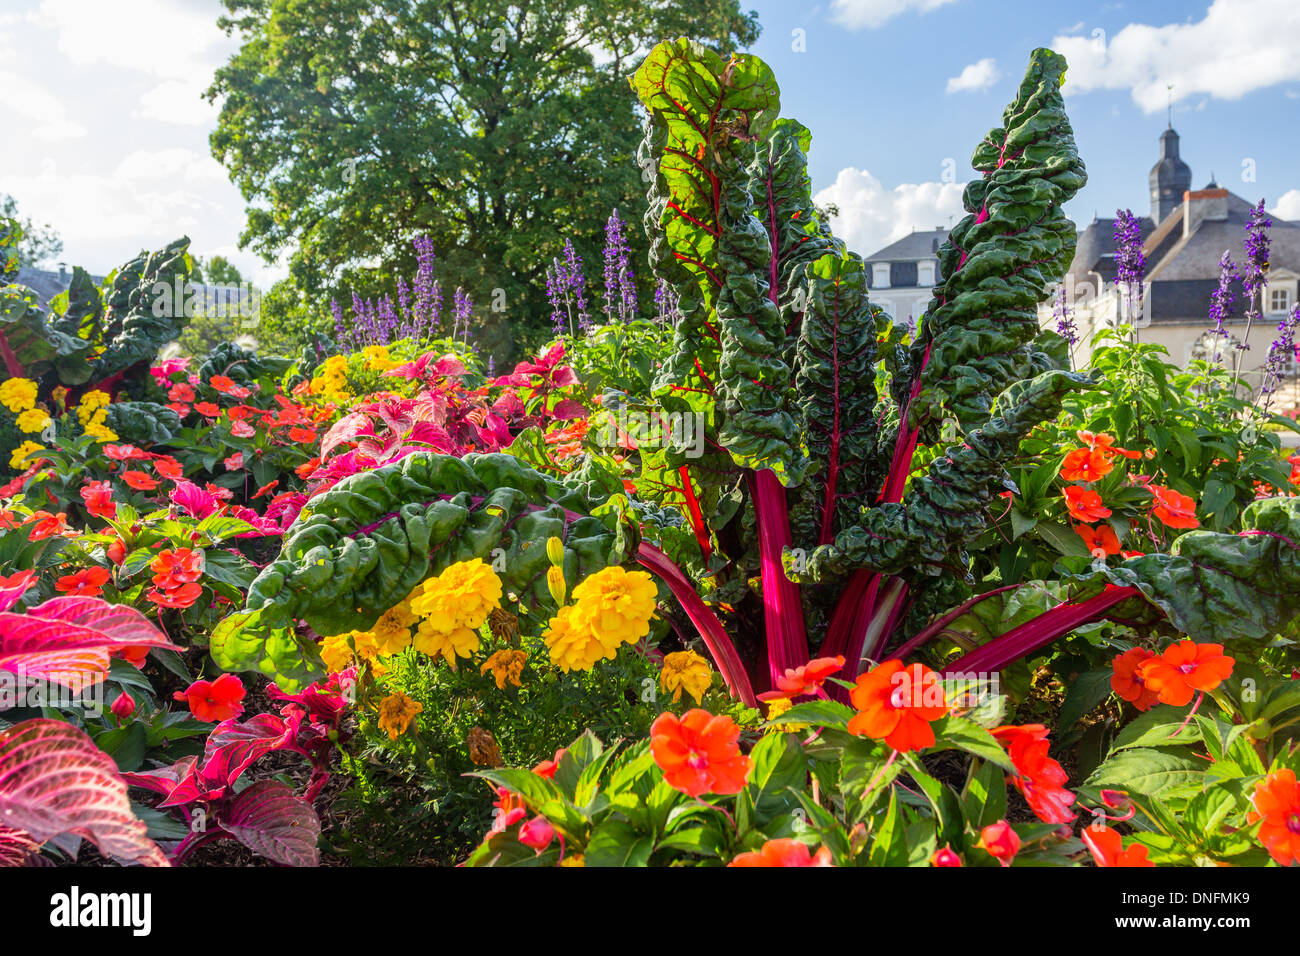 Red-stemmed chard, Beta vulgaris, and Impatiens in a flower bed // Bette à cardes rouges, Beta vulgaris, et impatiences - Stock Image